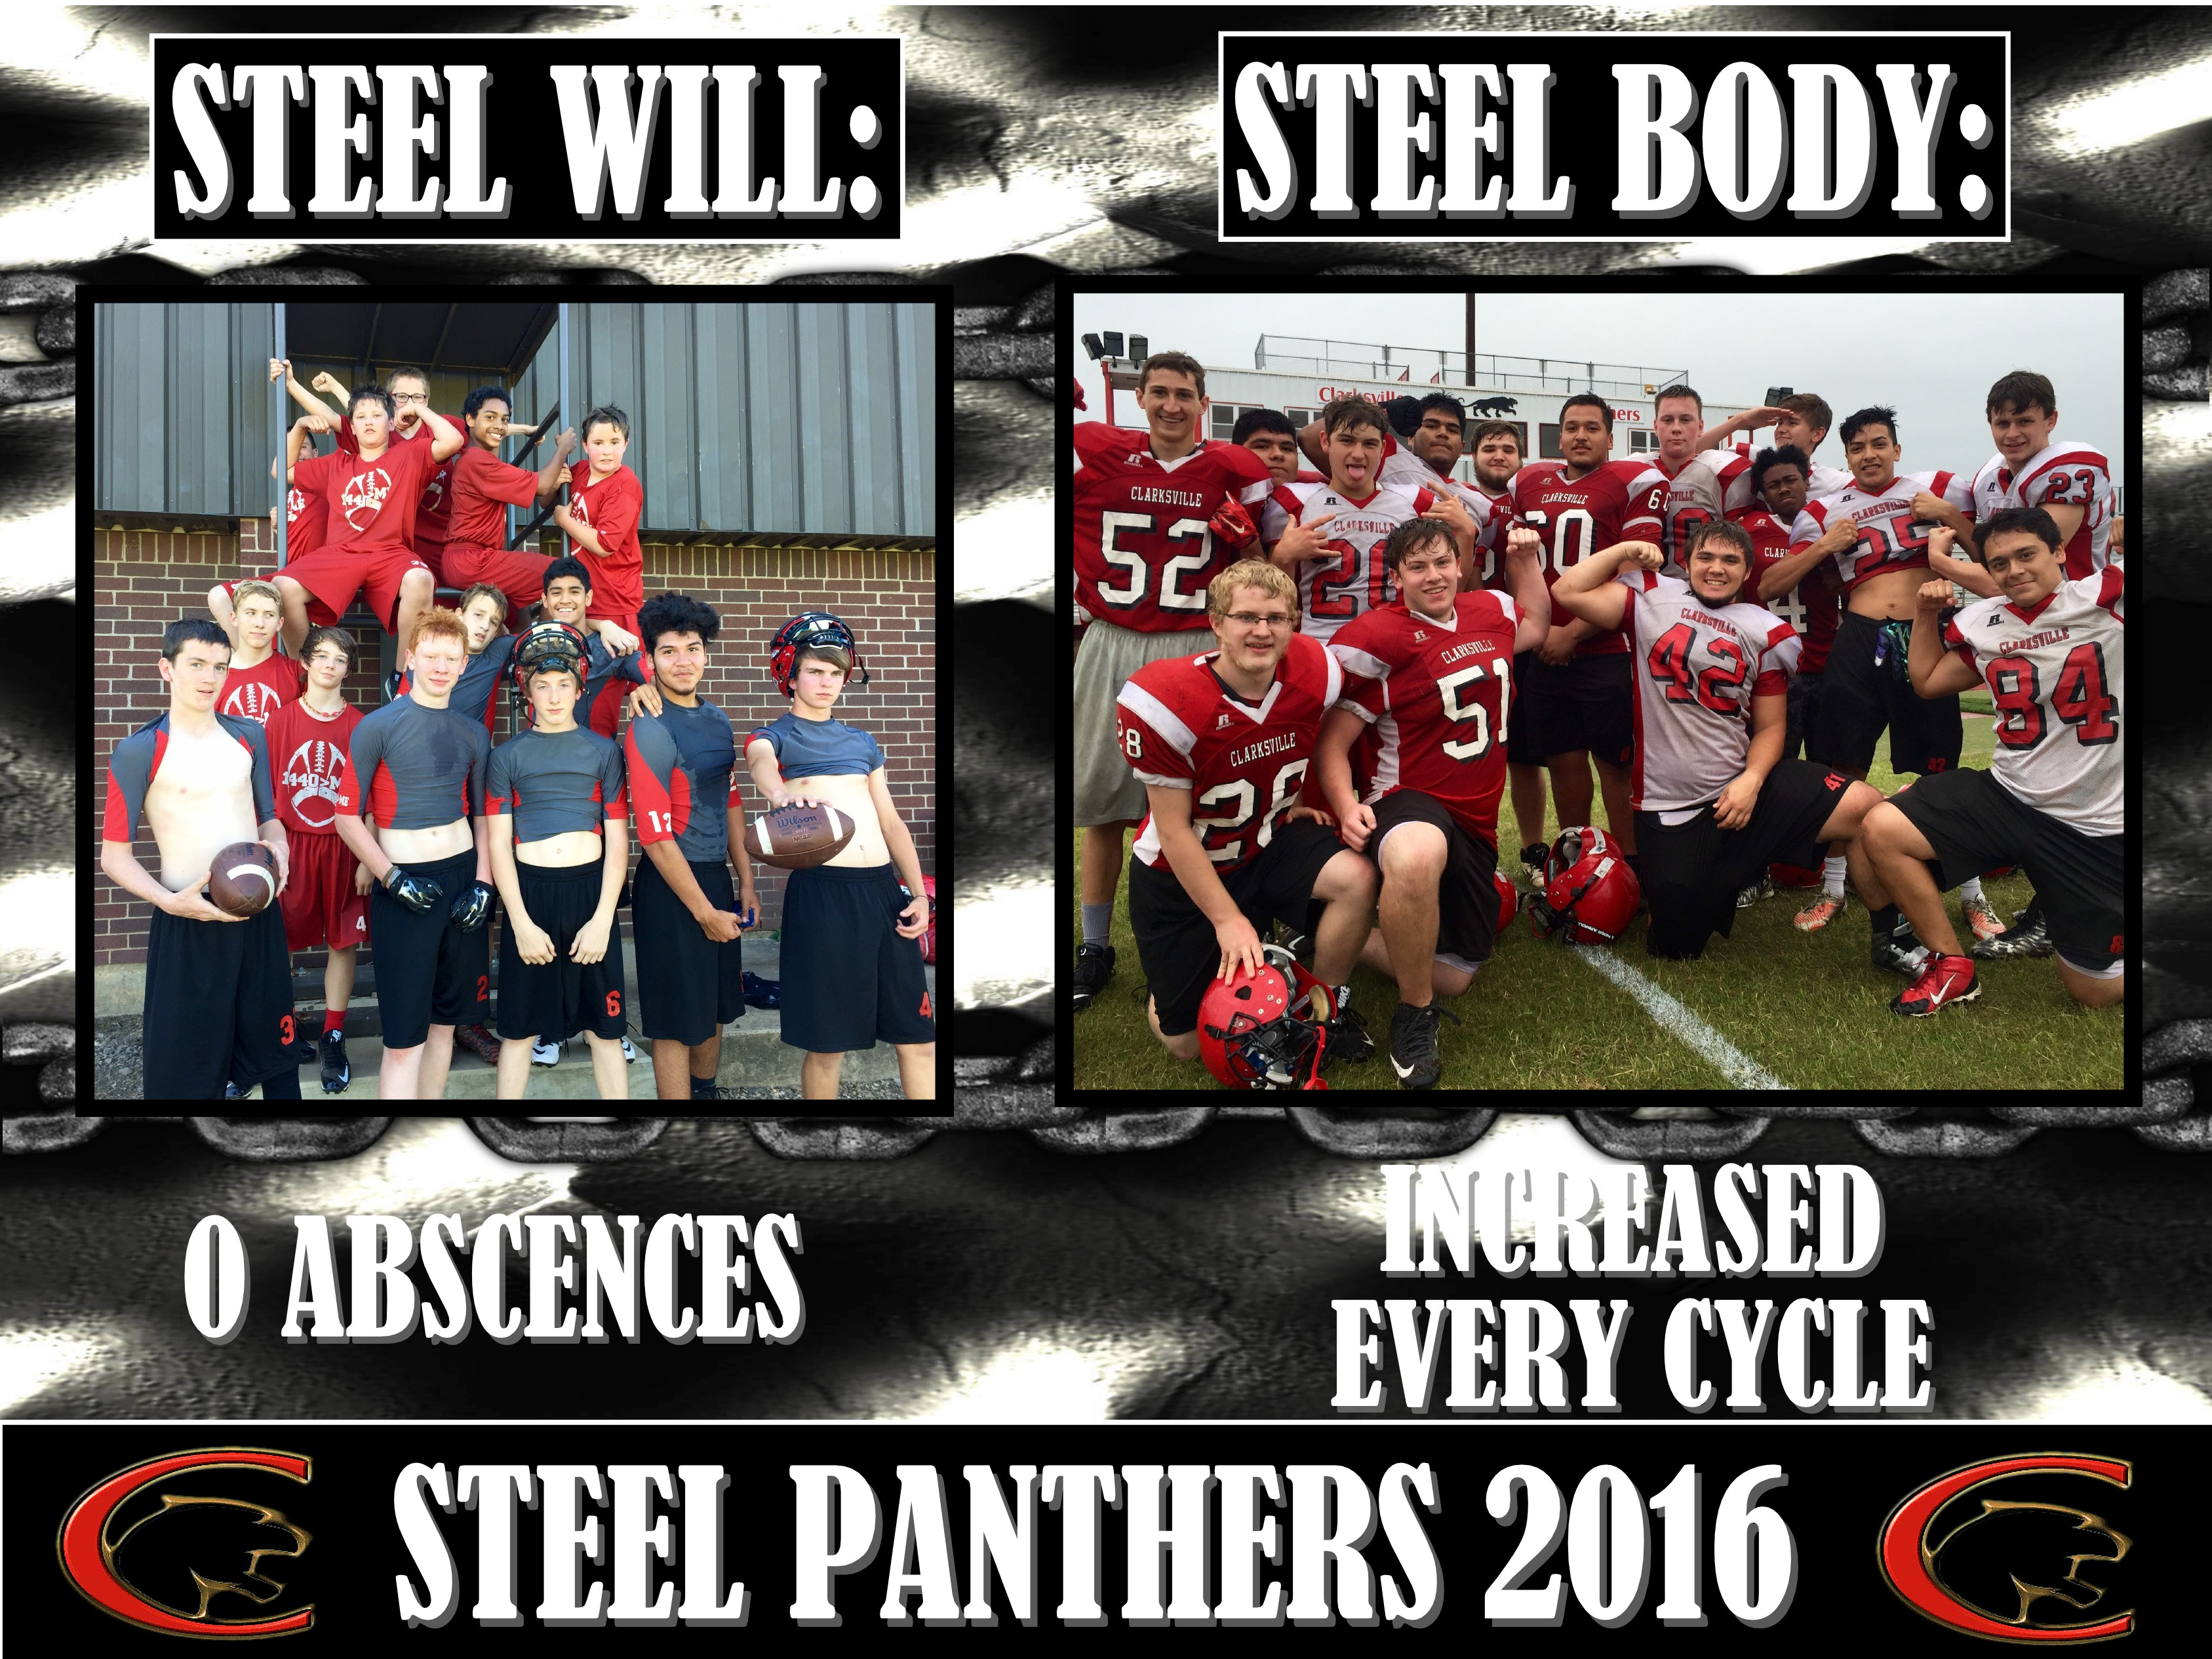 steel panthers 2016.jpg